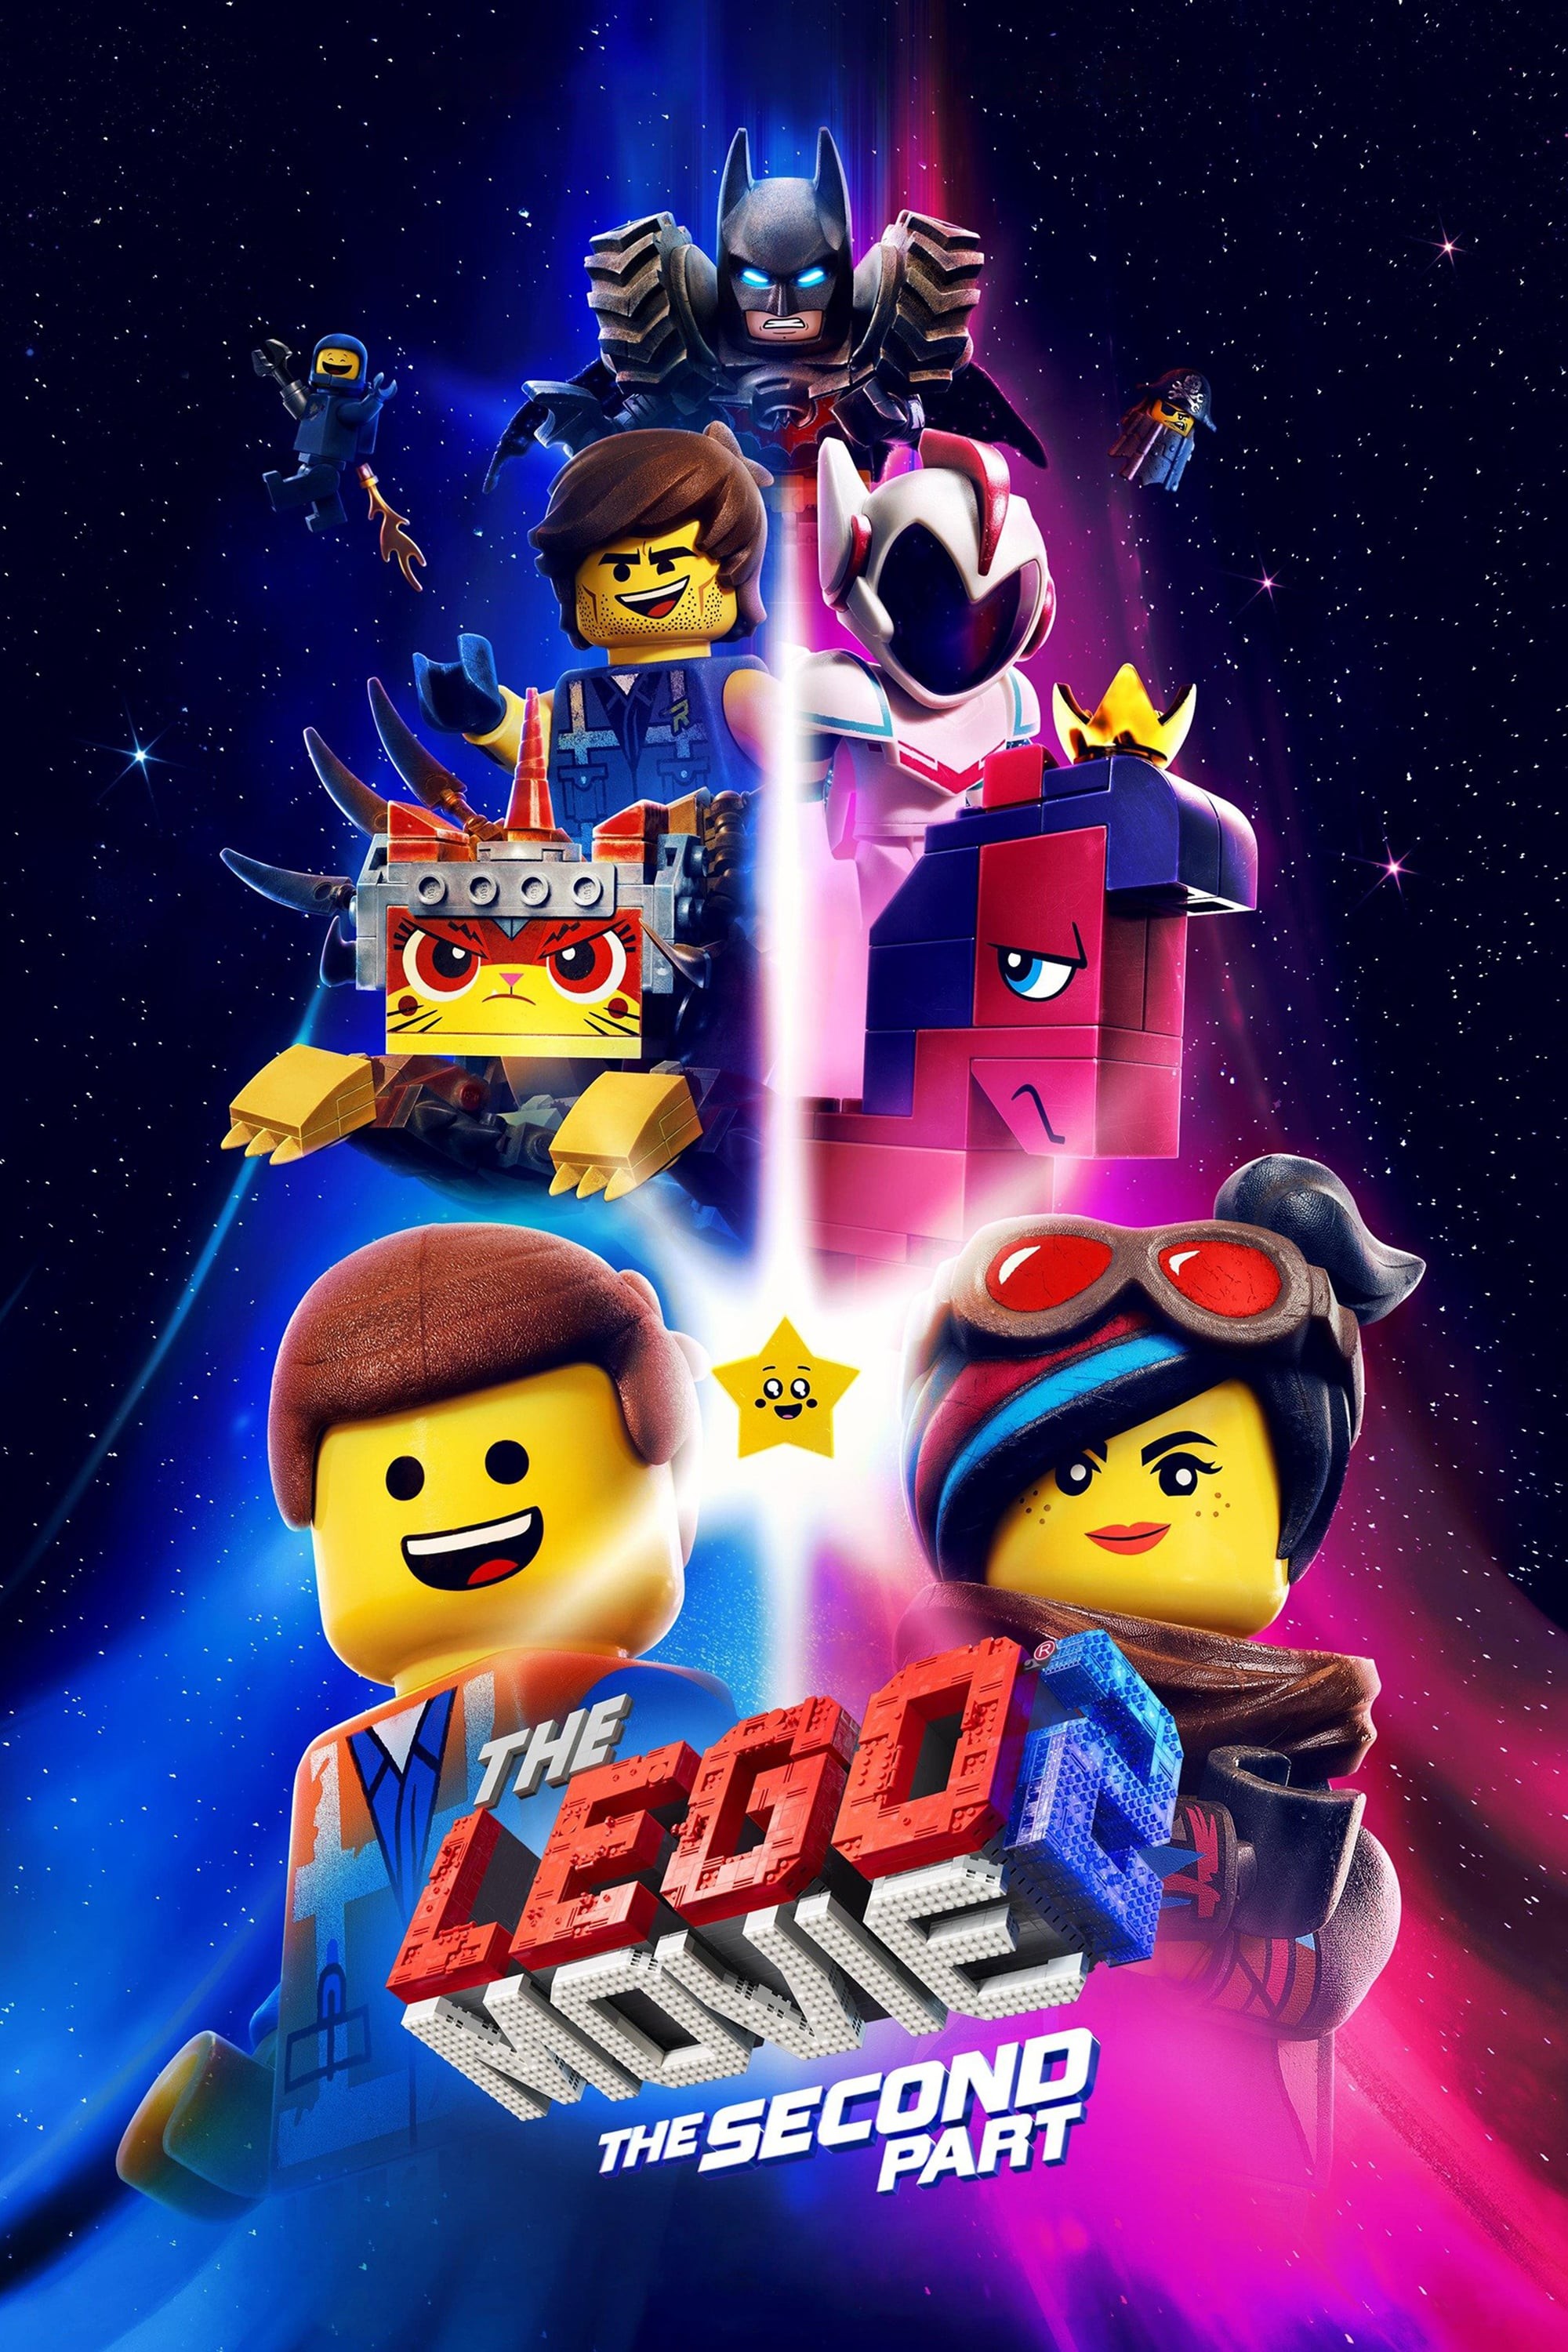 The Lego Movie 2 The Second Part Plaza Cinema